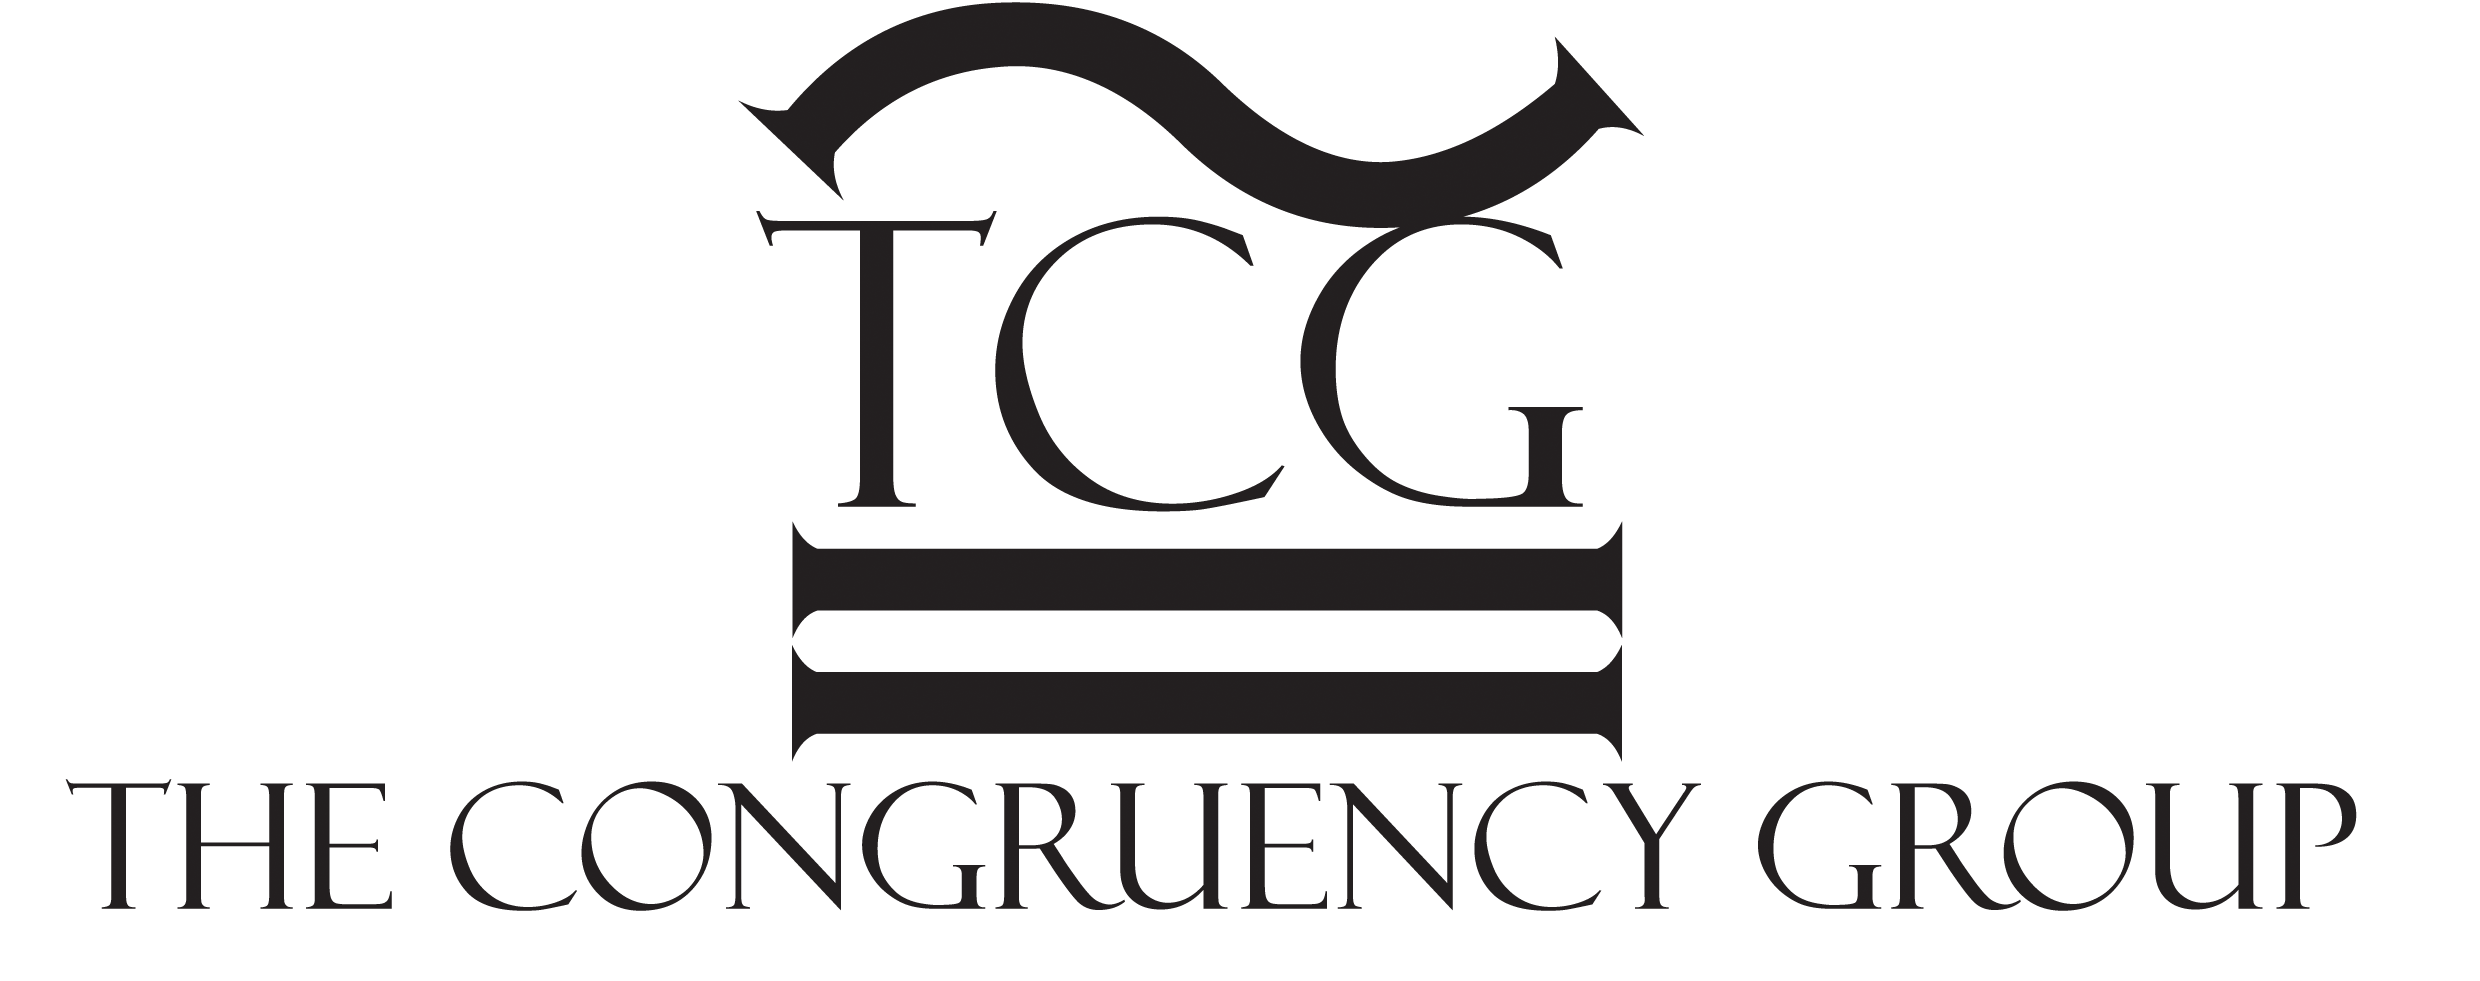 The Congruency Group's Online Training Courses